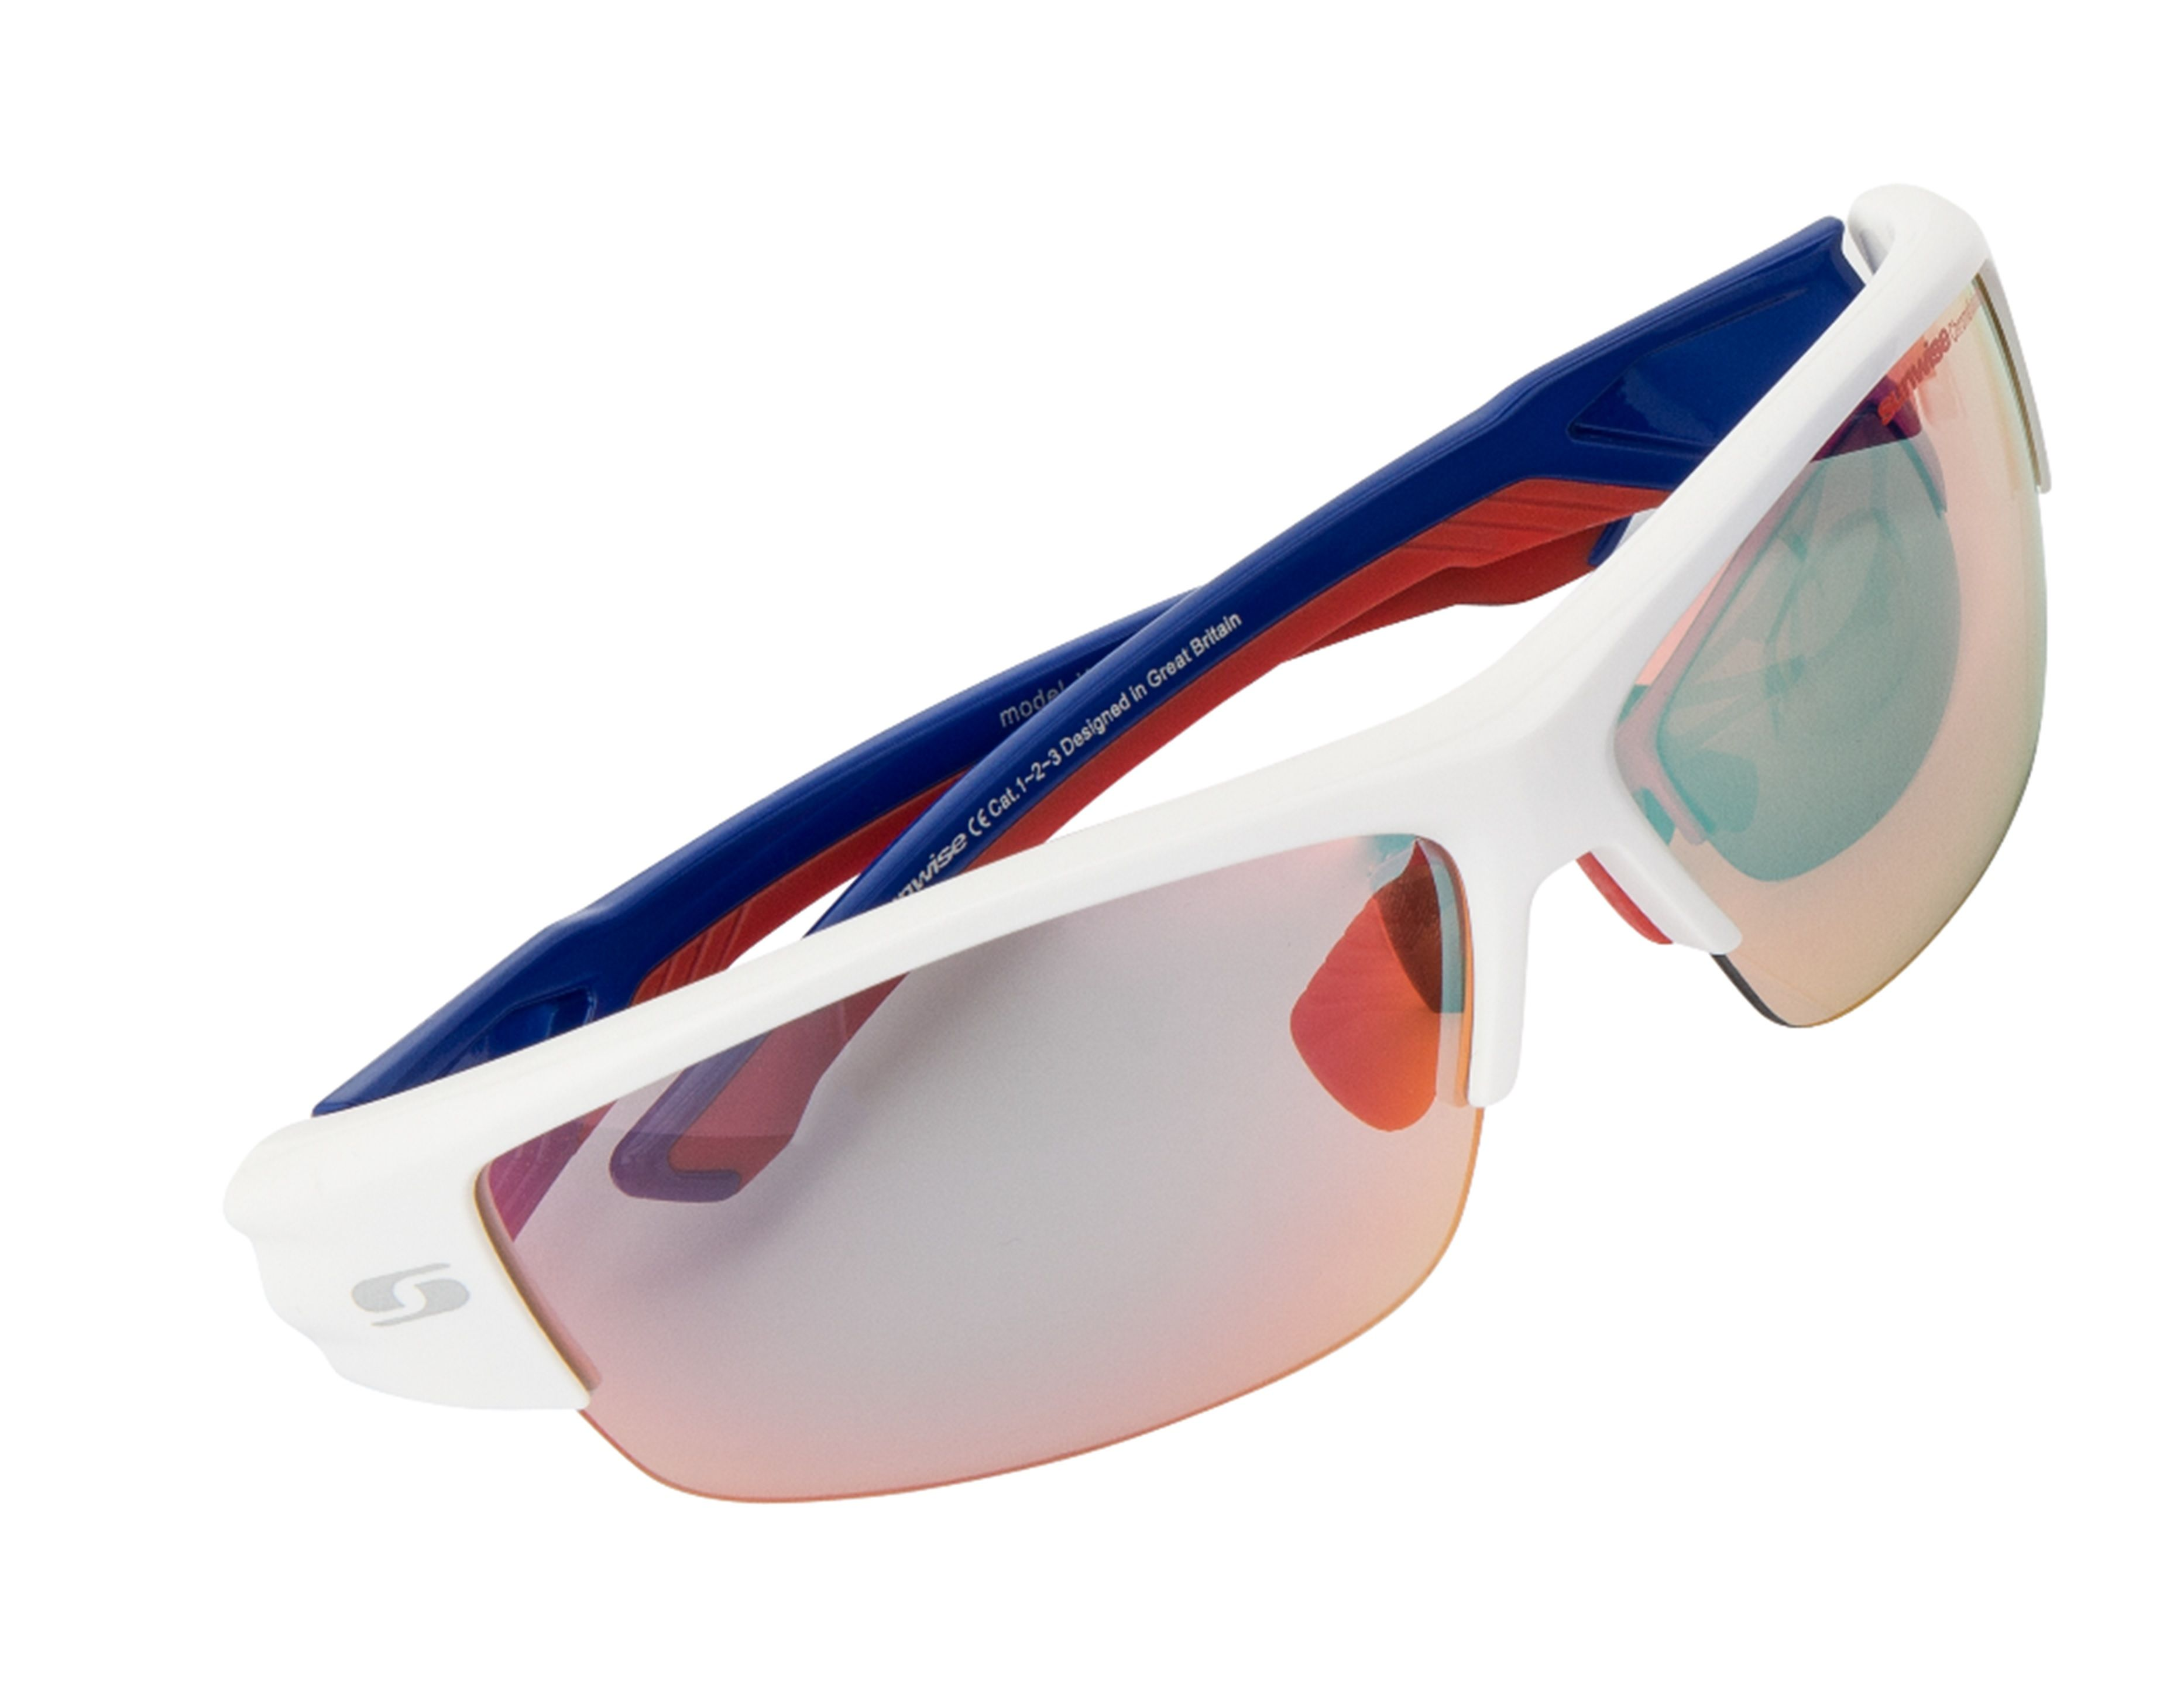 e4b4f545ed64 If you want to wear your cricket sunglasses for all matches think about  choosing photochromic (